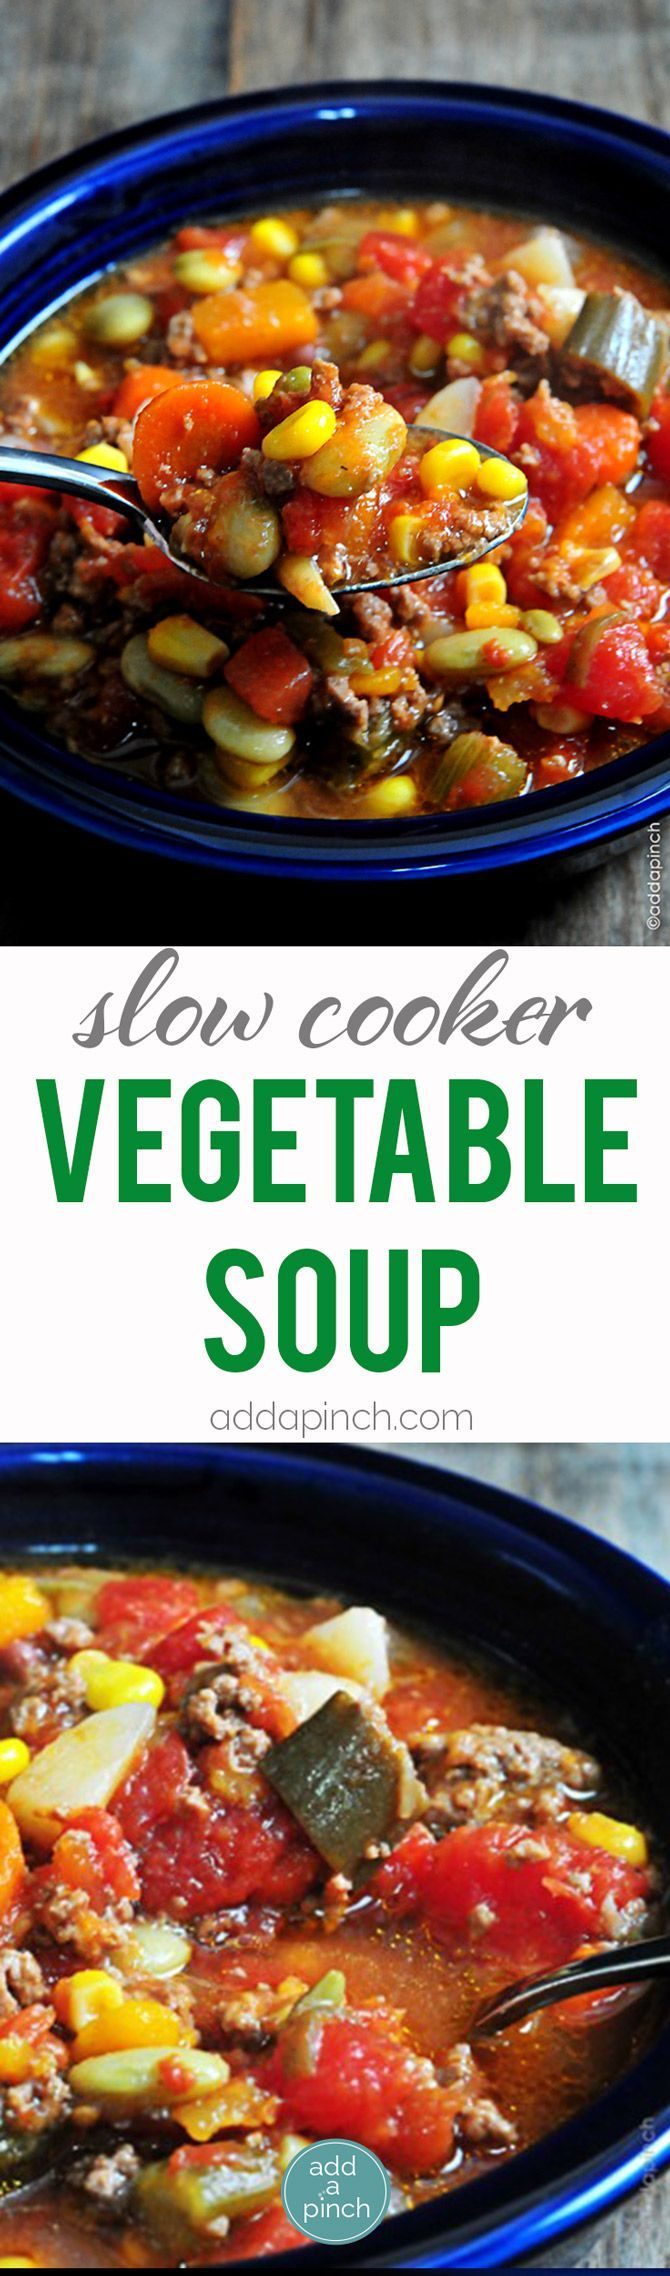 Slow Cooker Vegetable Soup - This Slow Cooker Vegetable Soup recipe is so simple to make and absolutely scrumptious. A definite family favorite!